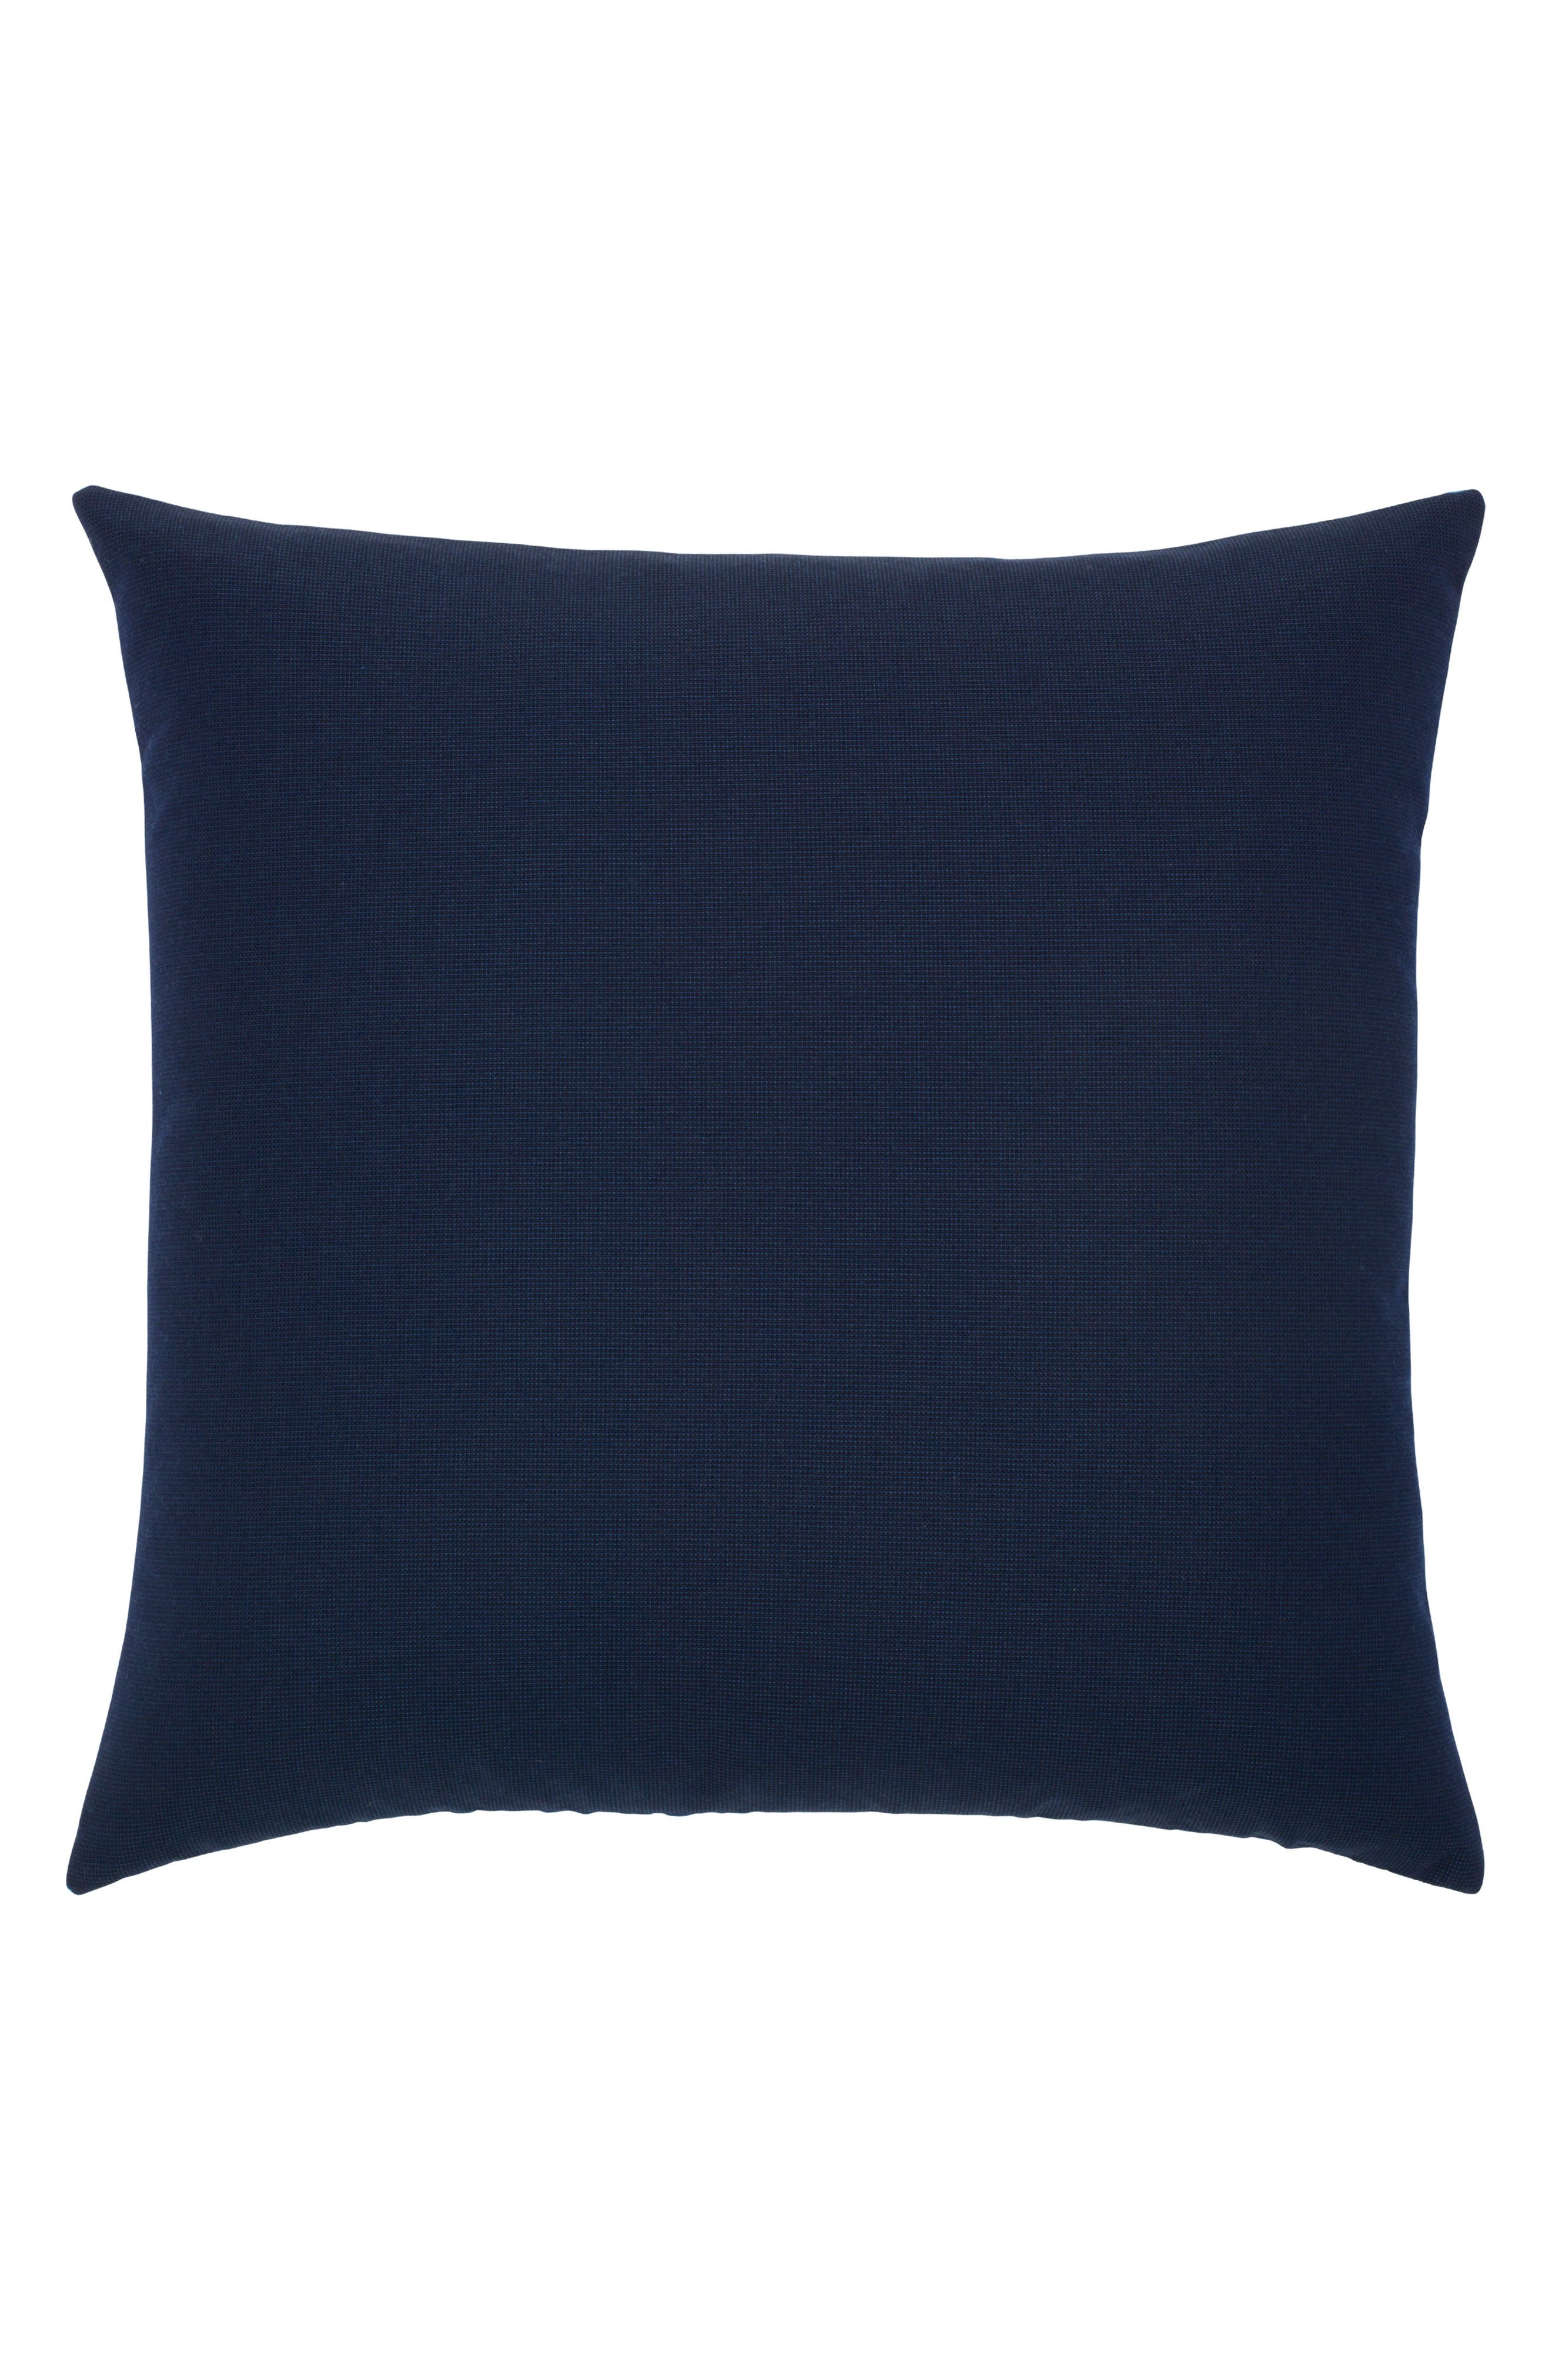 Optic Azure Indoor/Outdoor Accent Pillow,                             Alternate thumbnail 3, color,                             Blue